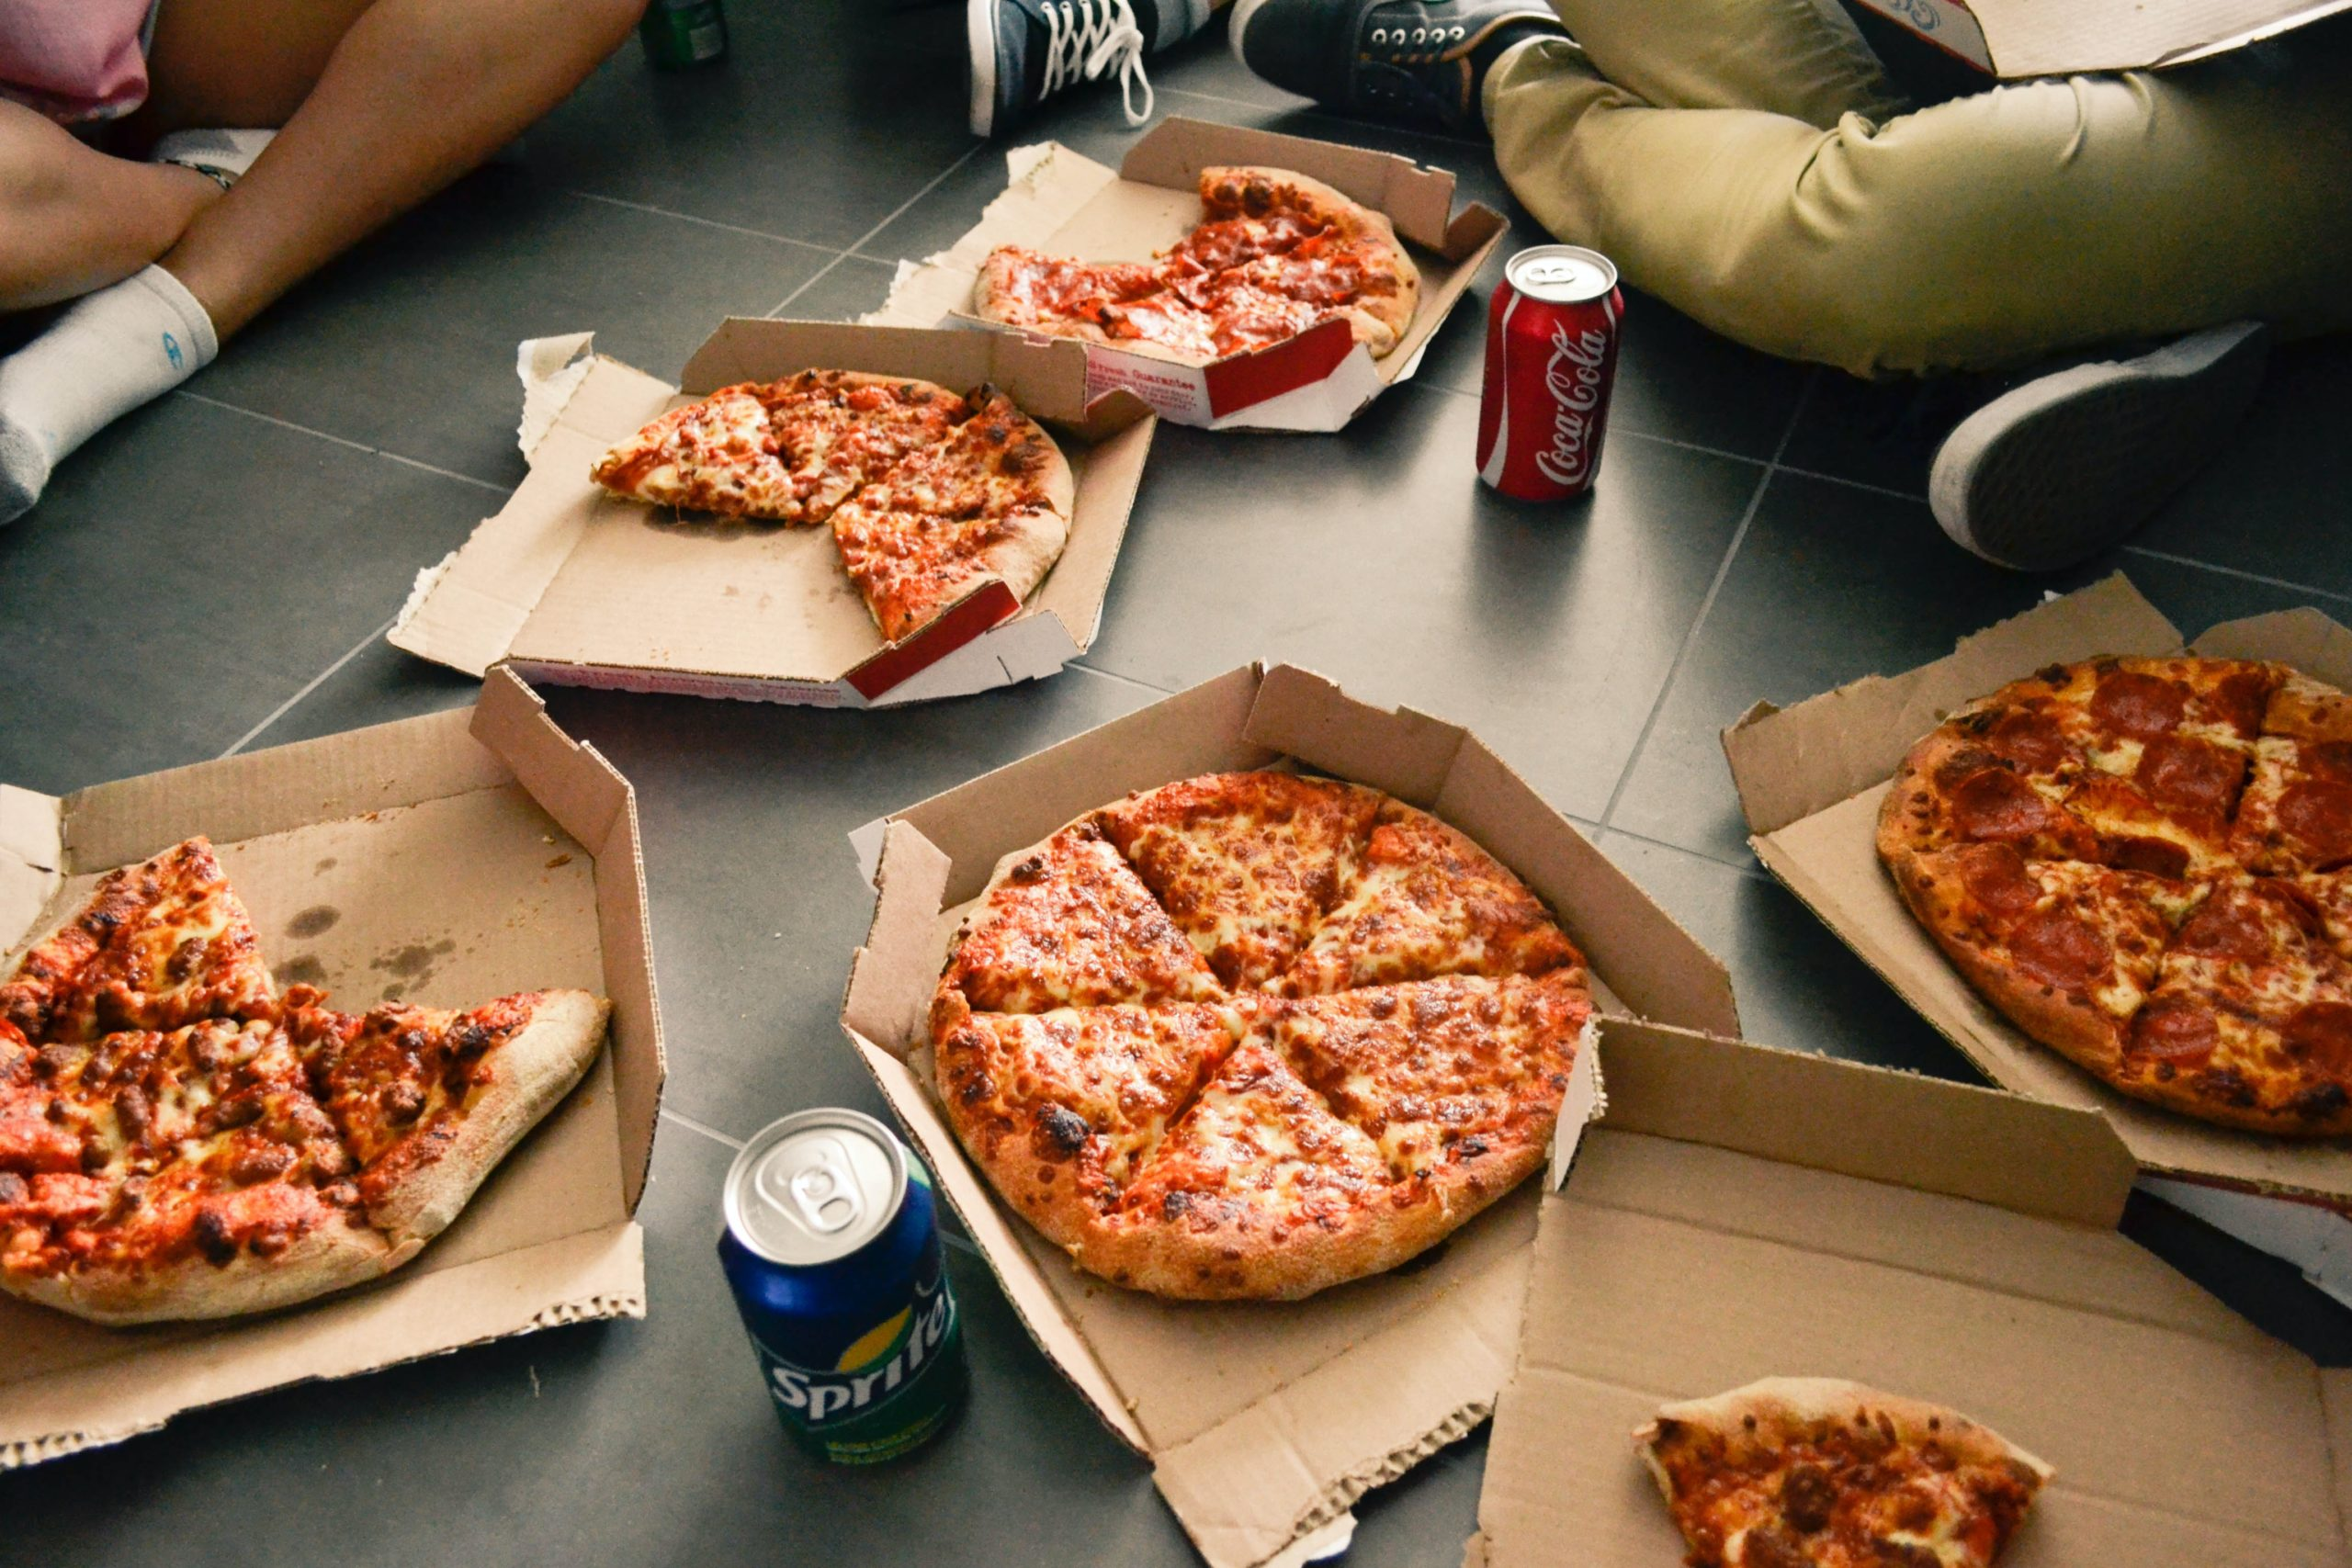 Why Futons Are Perfect for Pizza Parties